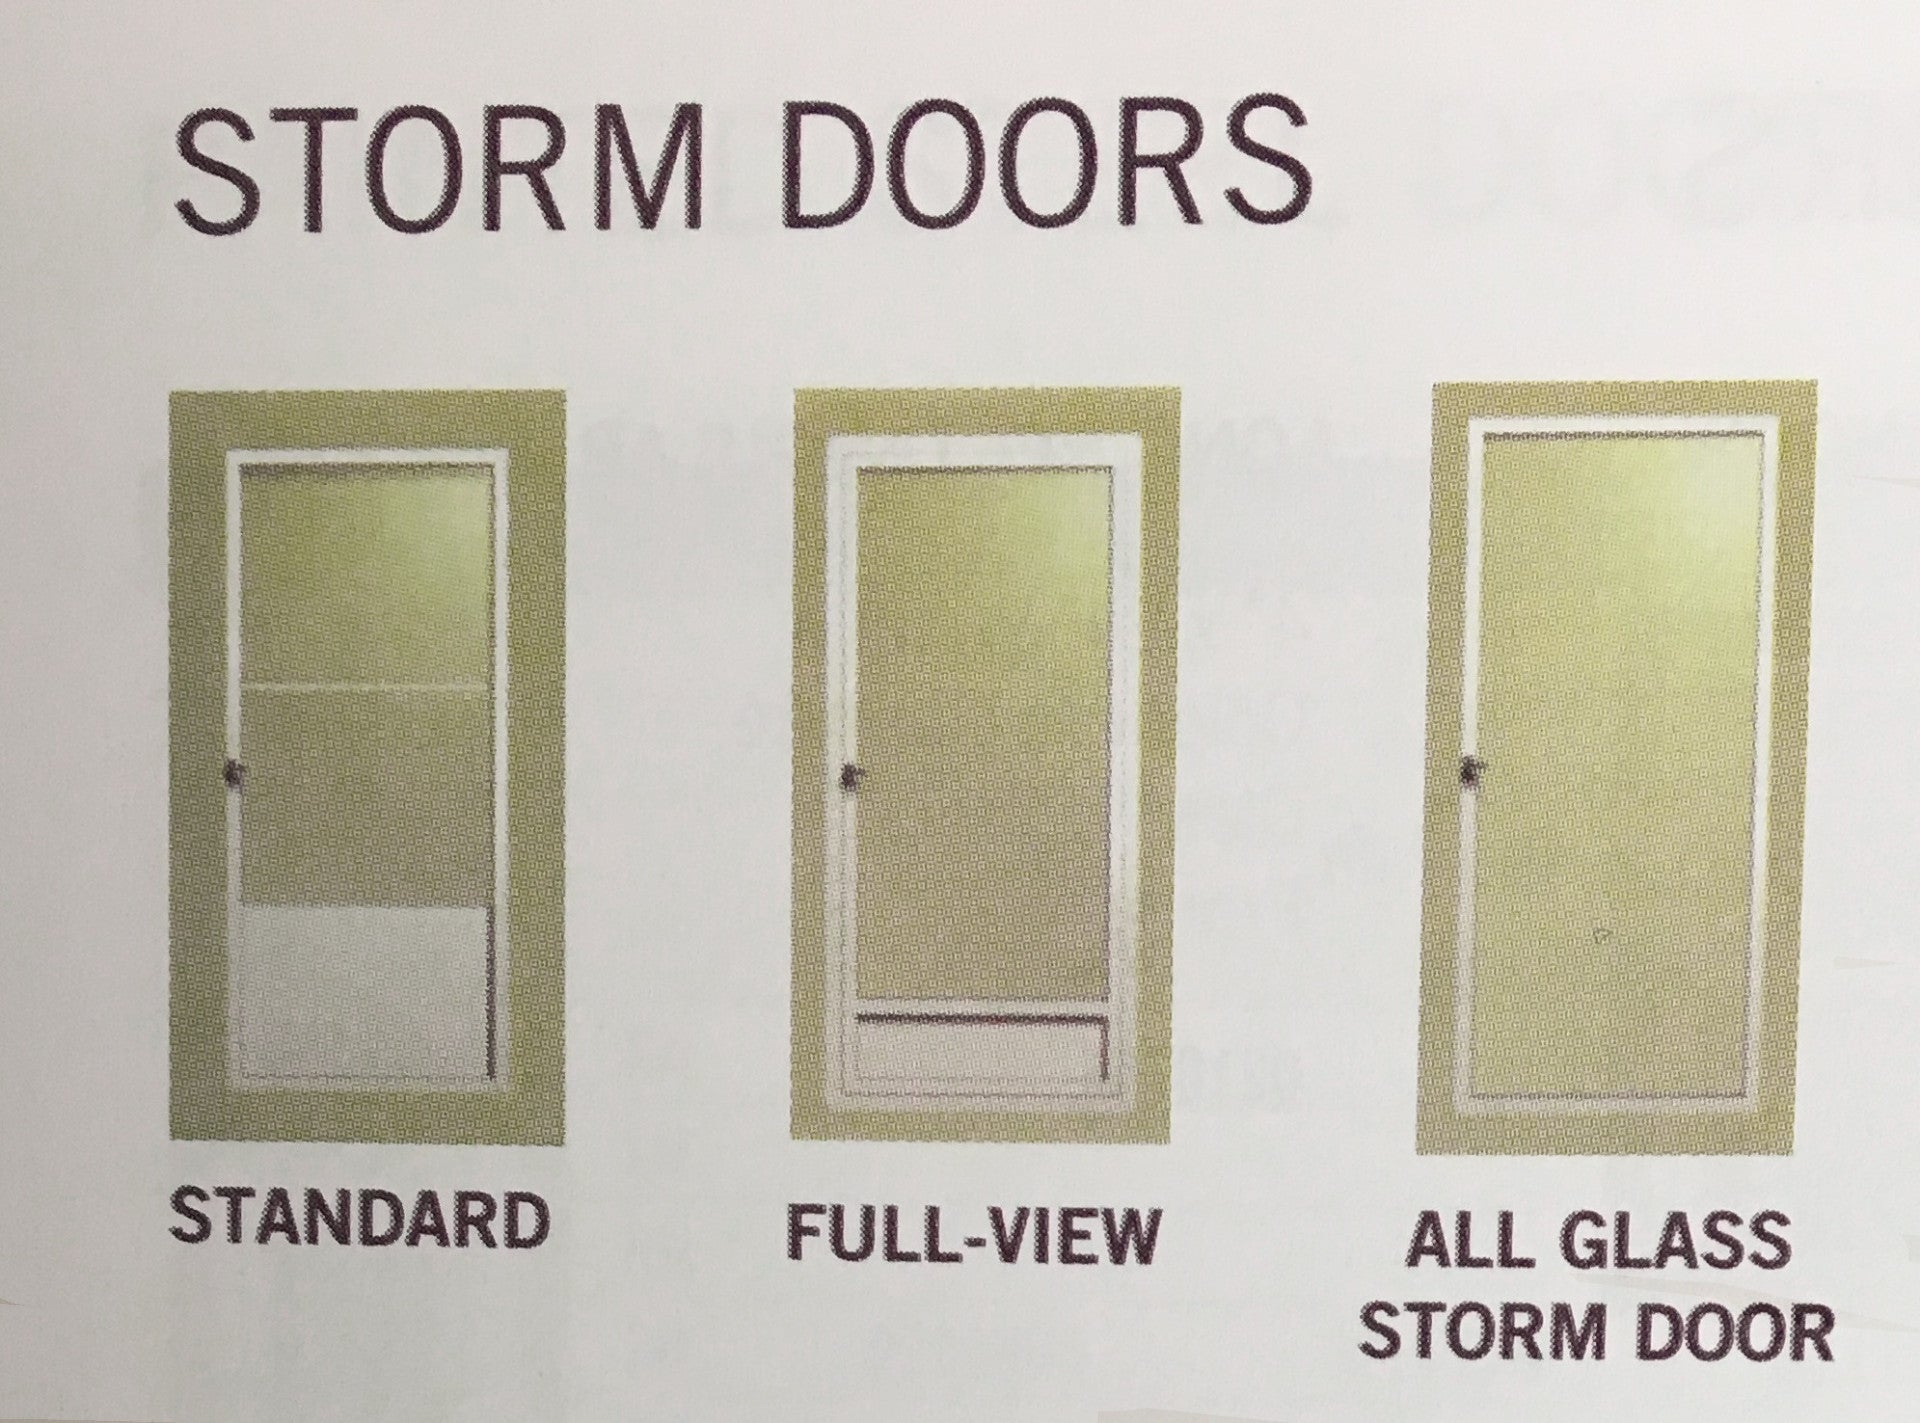 Elixir Storm Doors – M&L Mobile Home Supply on mobile home cabinets, mobile home windows, mobile home closets, mobile home 6 panel door, mobile home appliances, mobile home exterior,